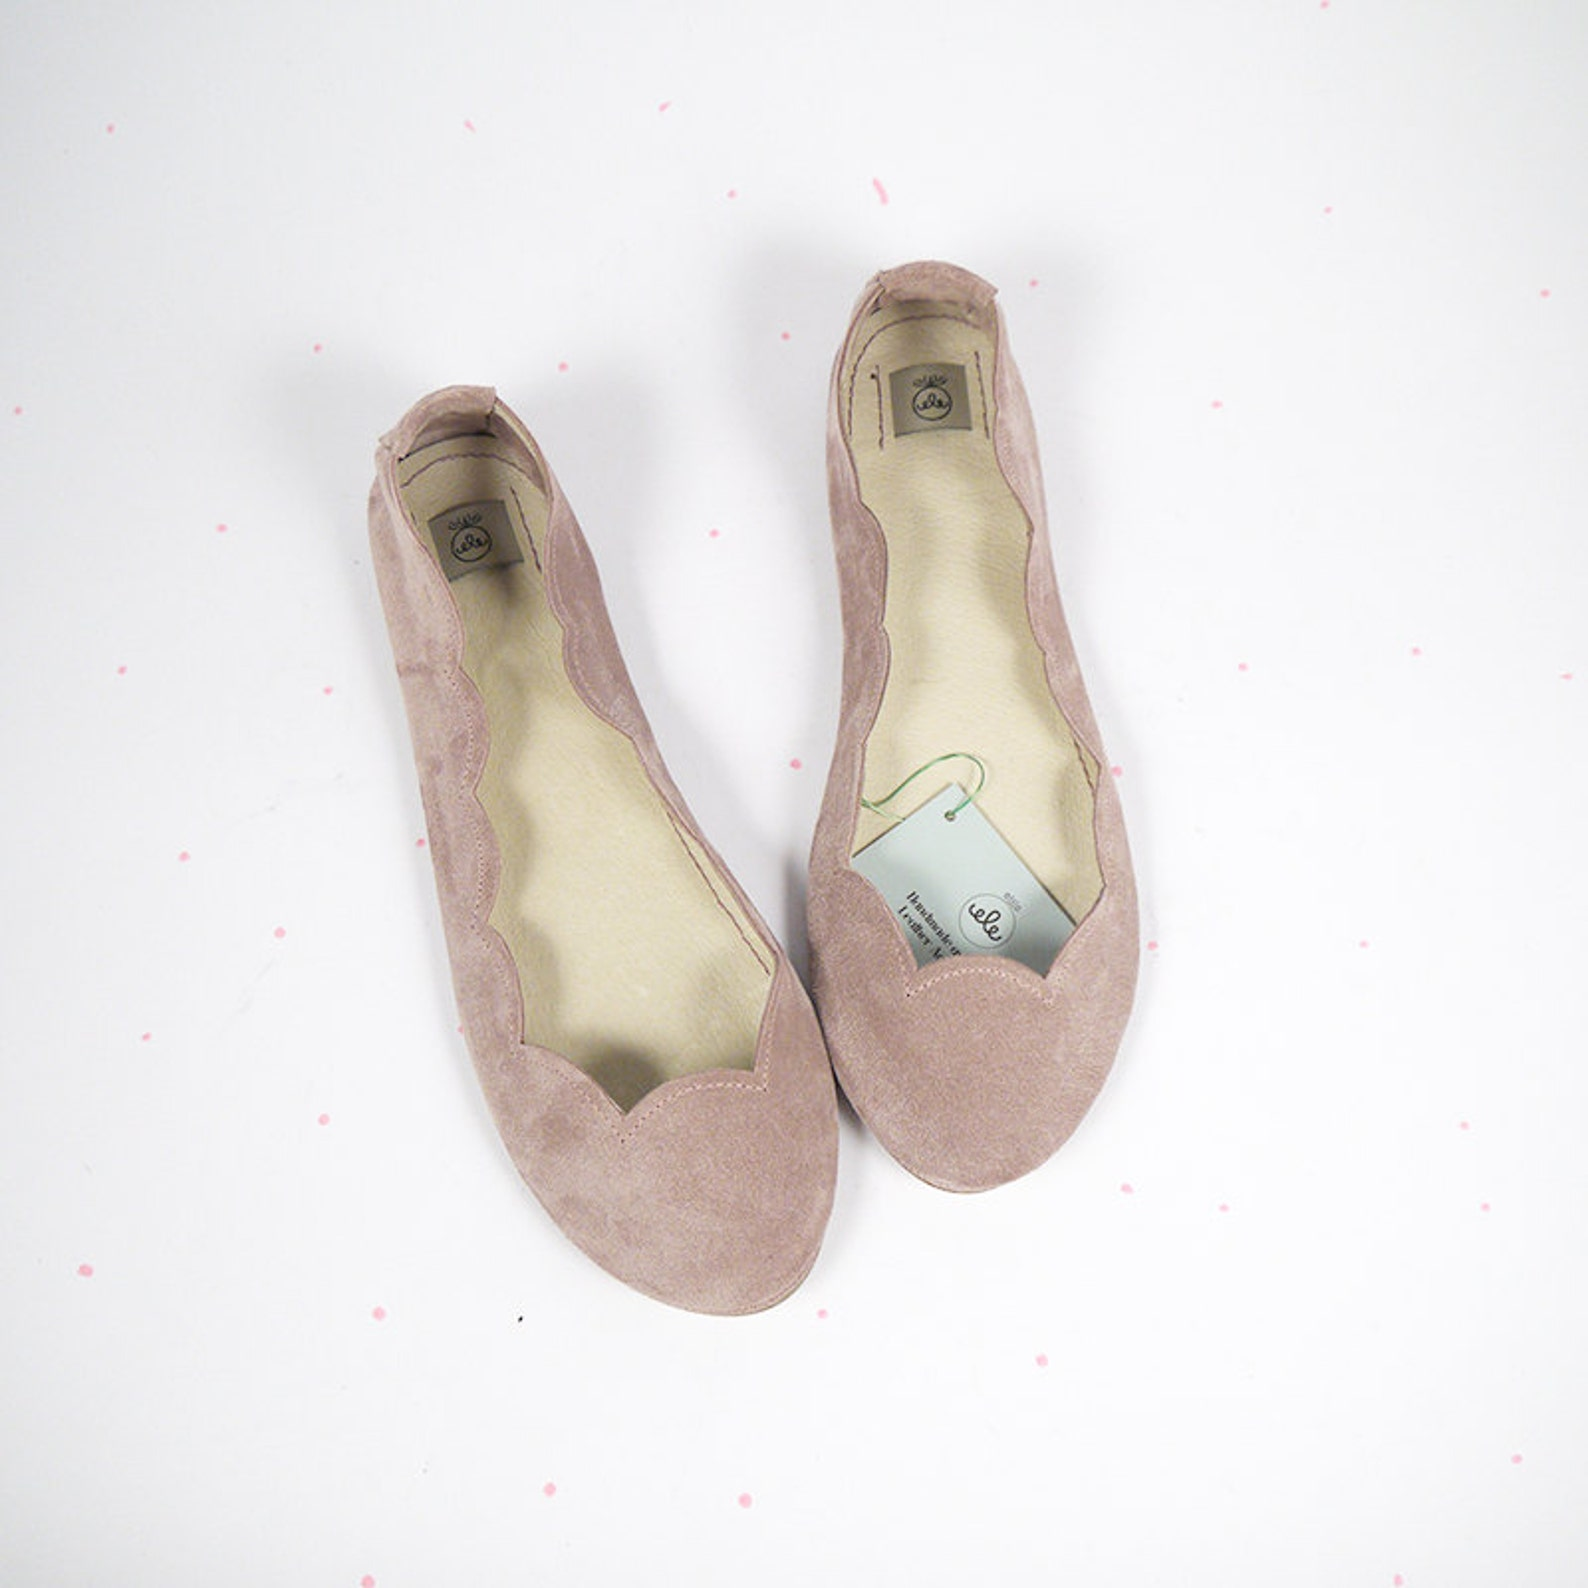 ballet flats shoes. bridal shoes. wedding ballet flats. rose smoke shoes. rose gold wedding. low heel shoes. brautschuhe. chauss